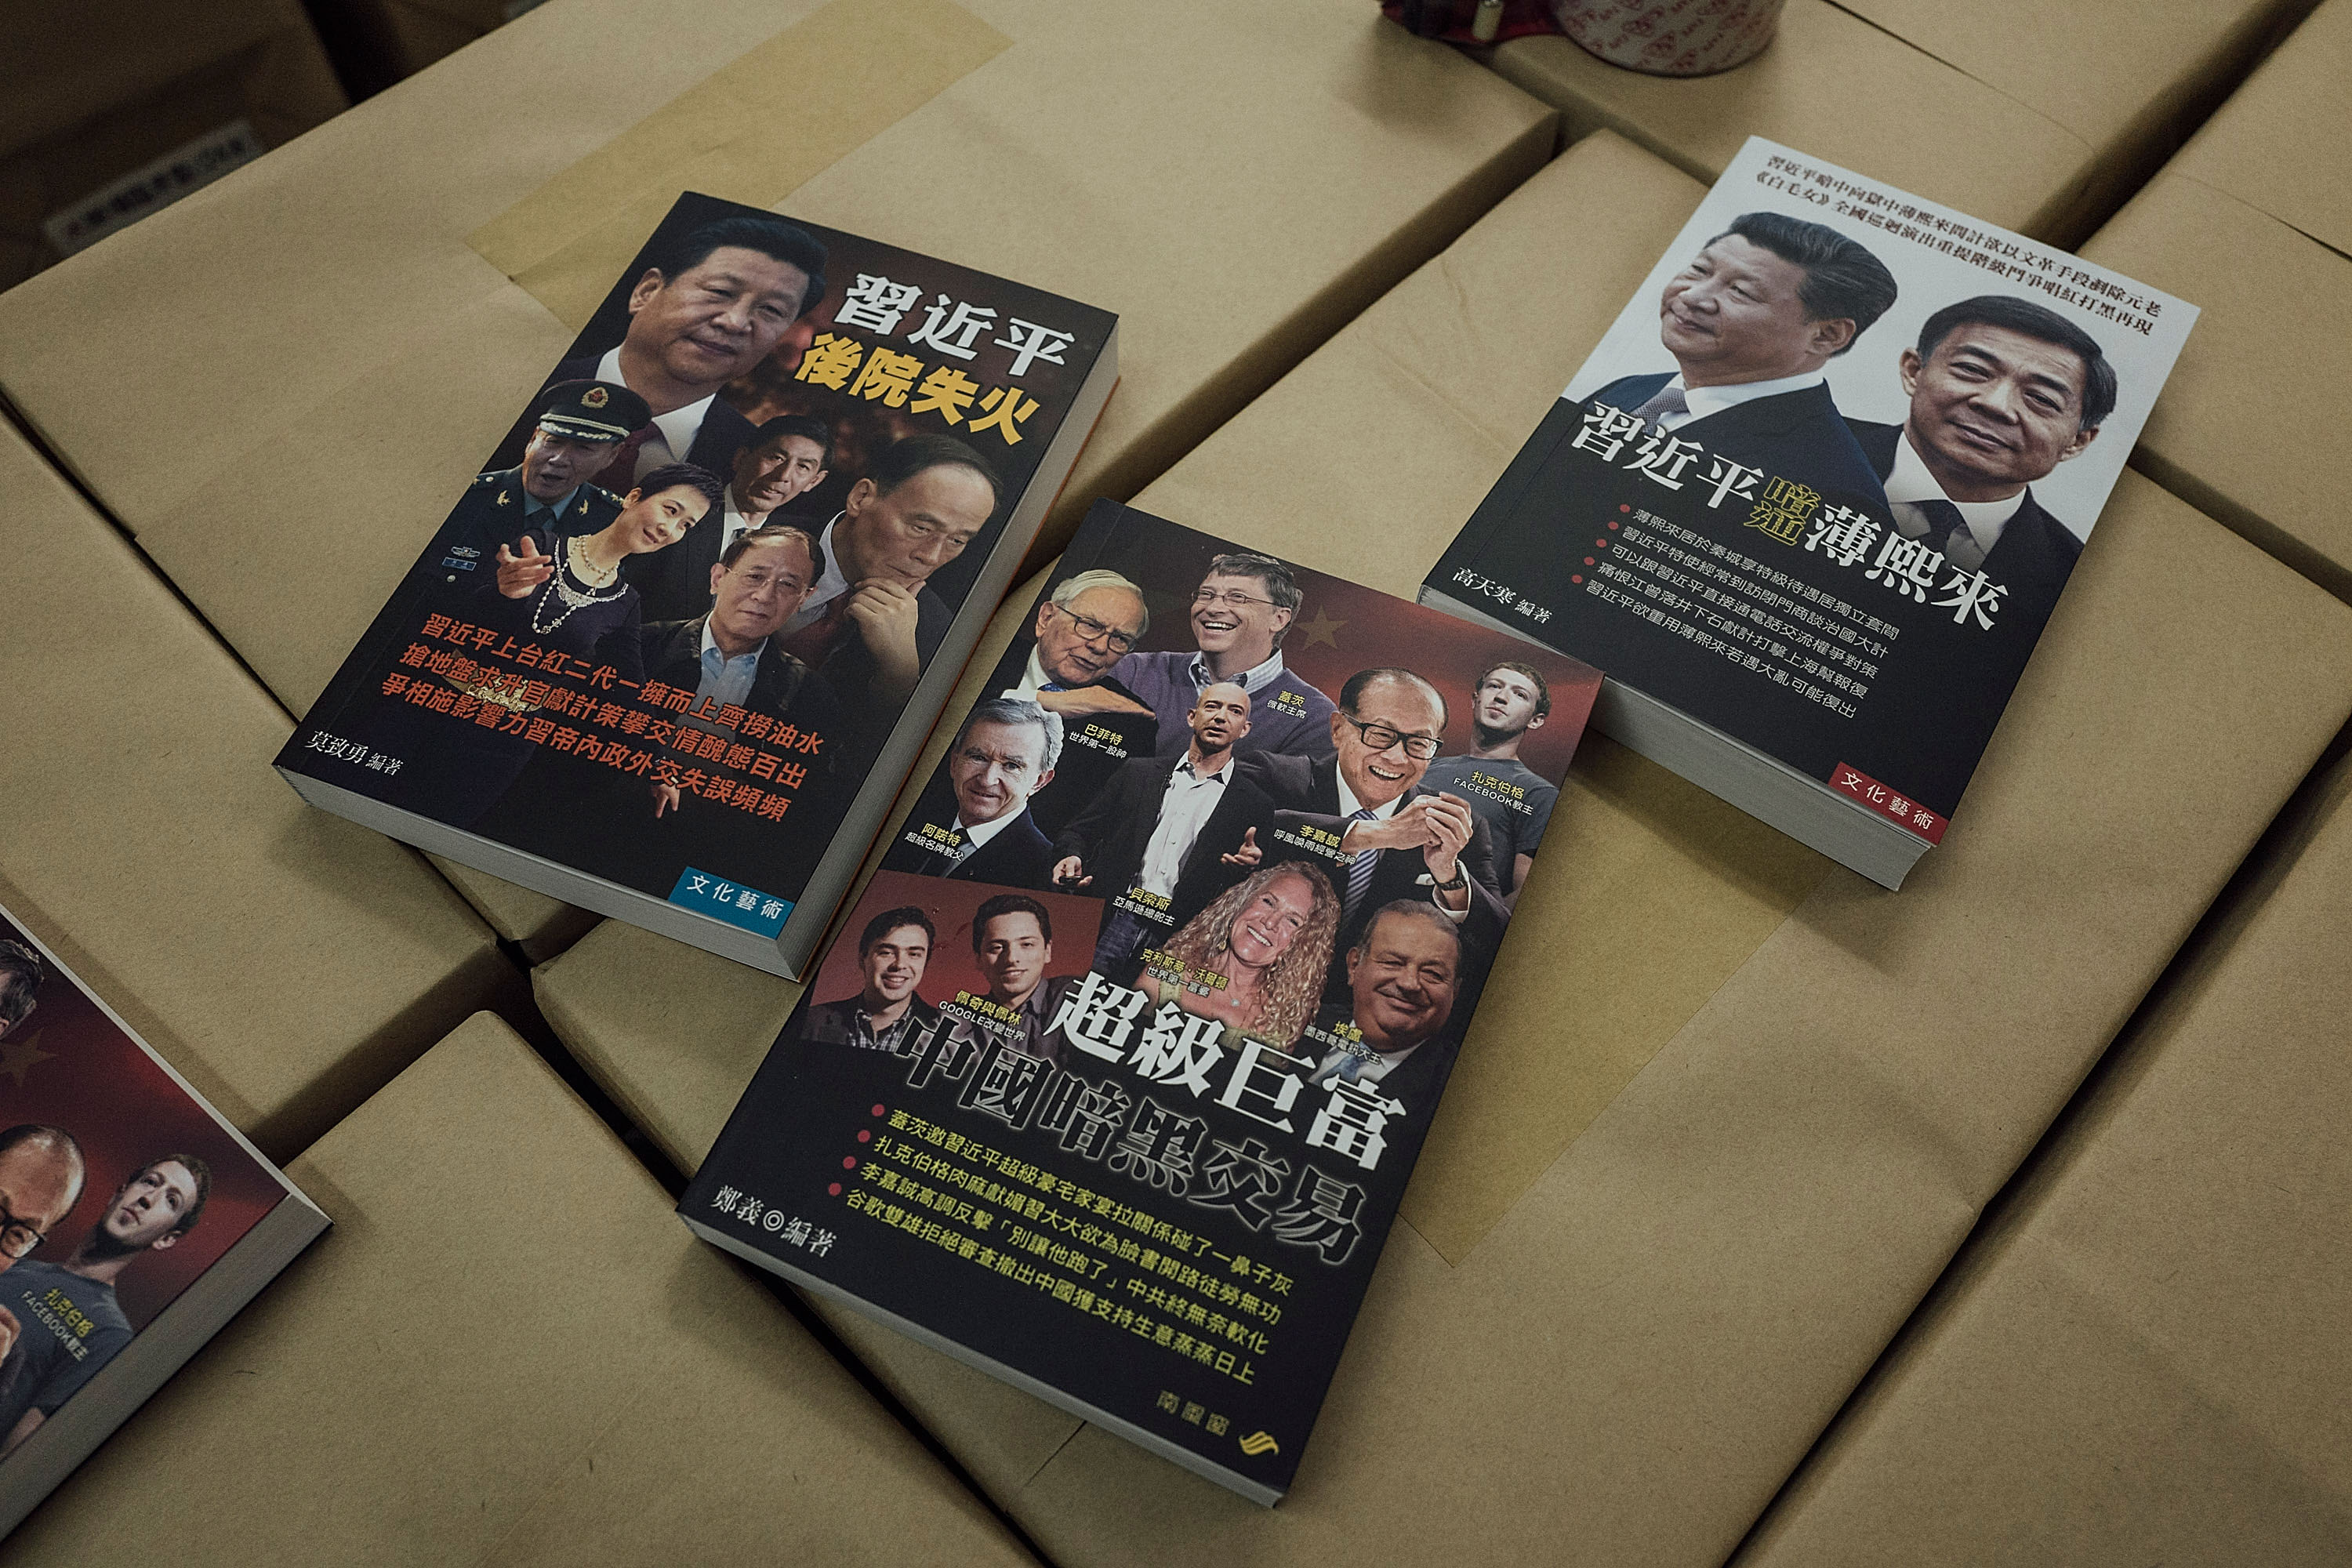 Books on Chinese politics are seen at the warehouse of Hong Kong–based publisher Mighty Current Media, owned by missing bookseller Lee Bo, on Jan. 2, 2016, in Hong Kong